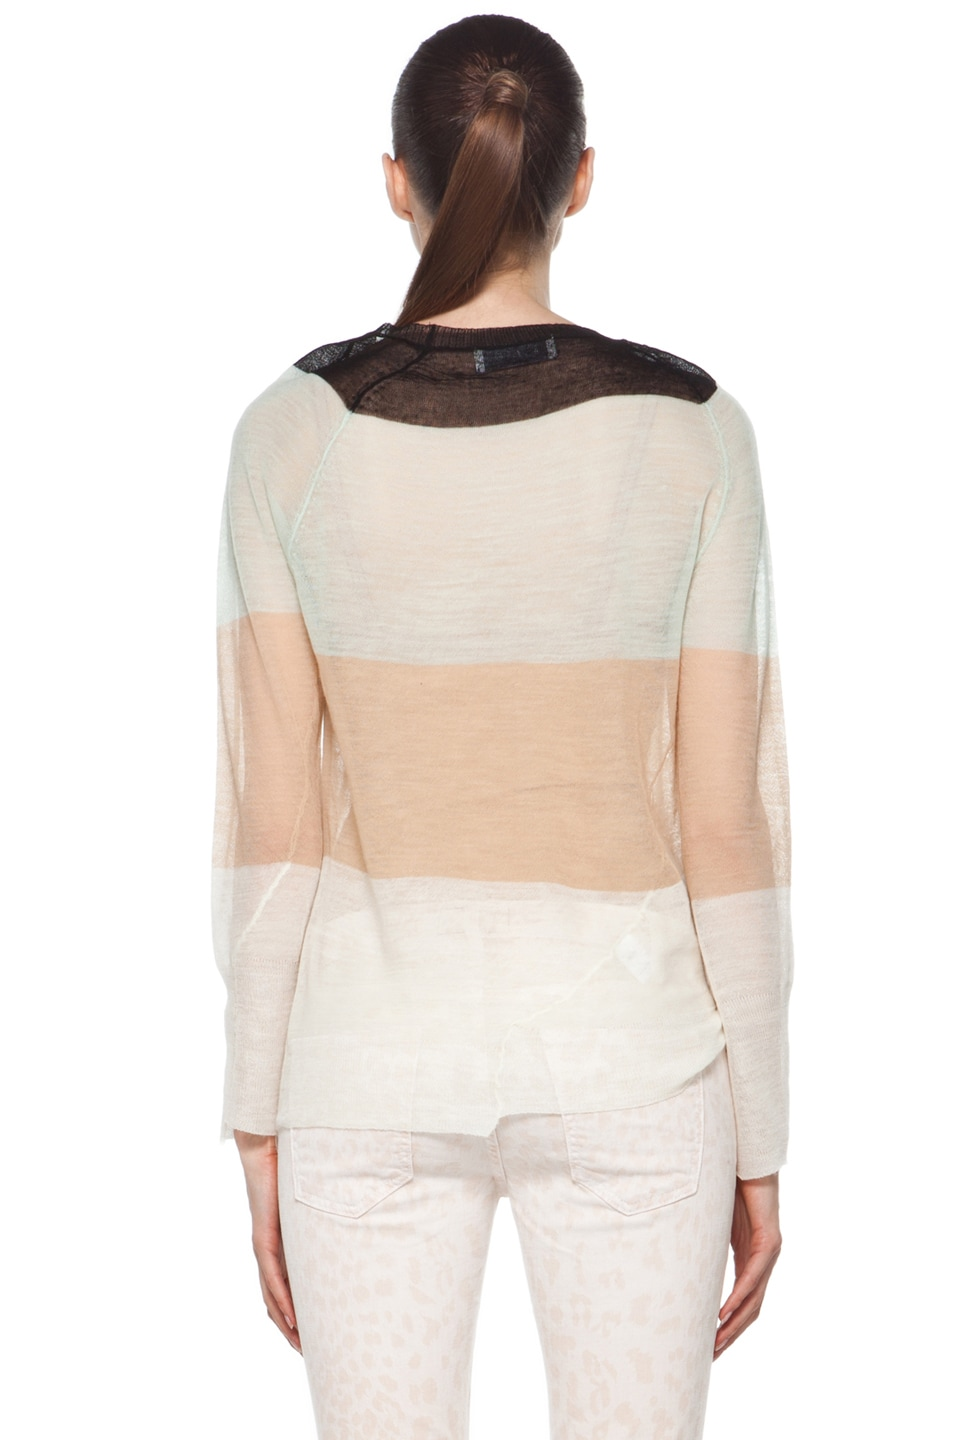 Image 4 of A.L.C. Cole Rugby Stripe Top in White/Beige/Mint/Black